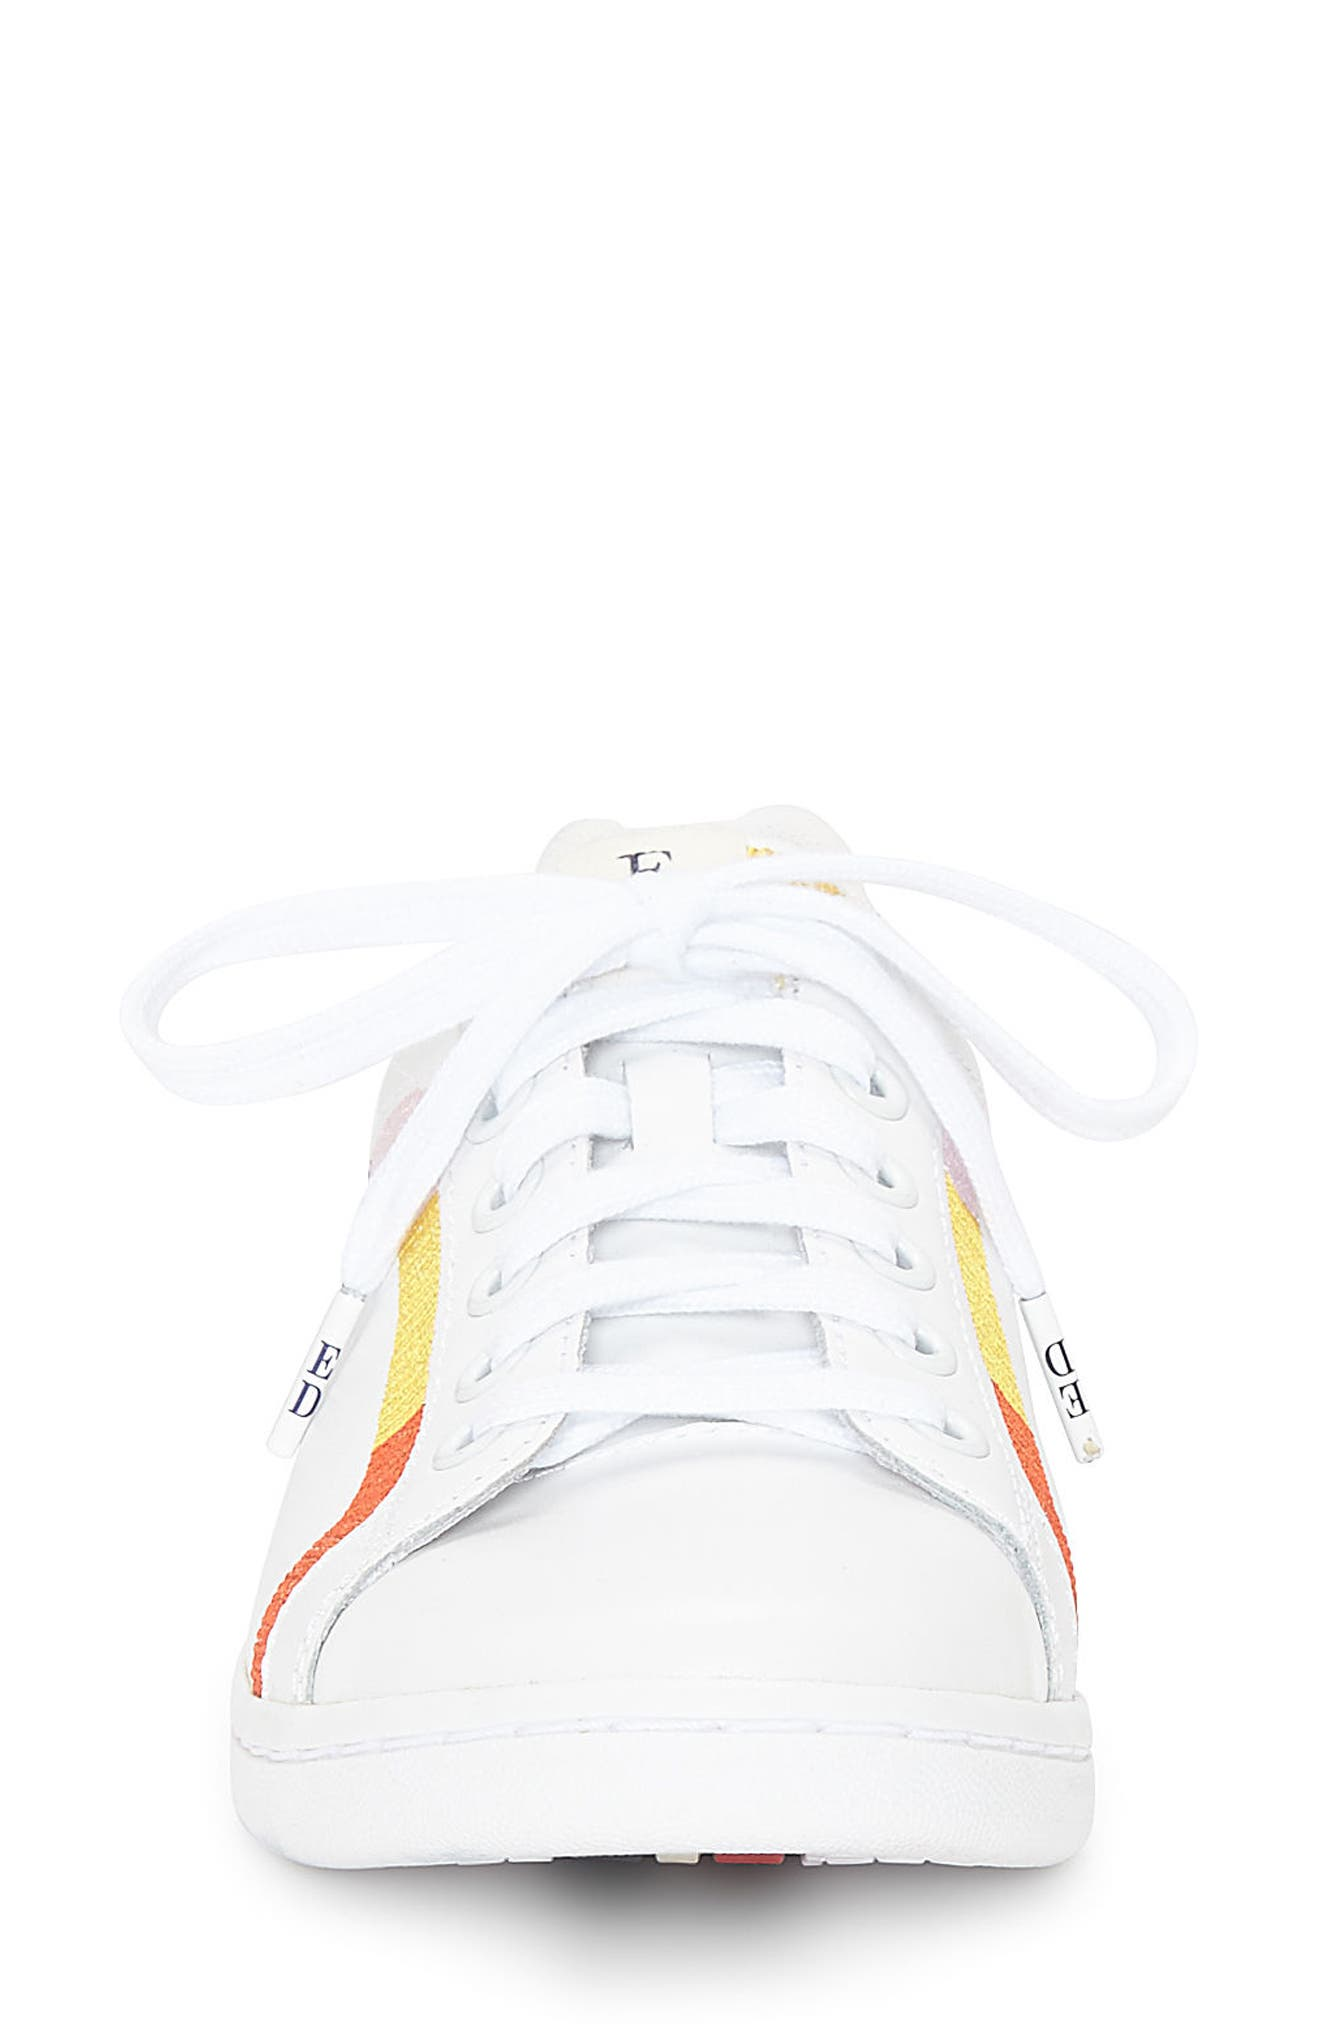 Costella Sneaker,                             Alternate thumbnail 4, color,                             PURE WHITE LEATHER